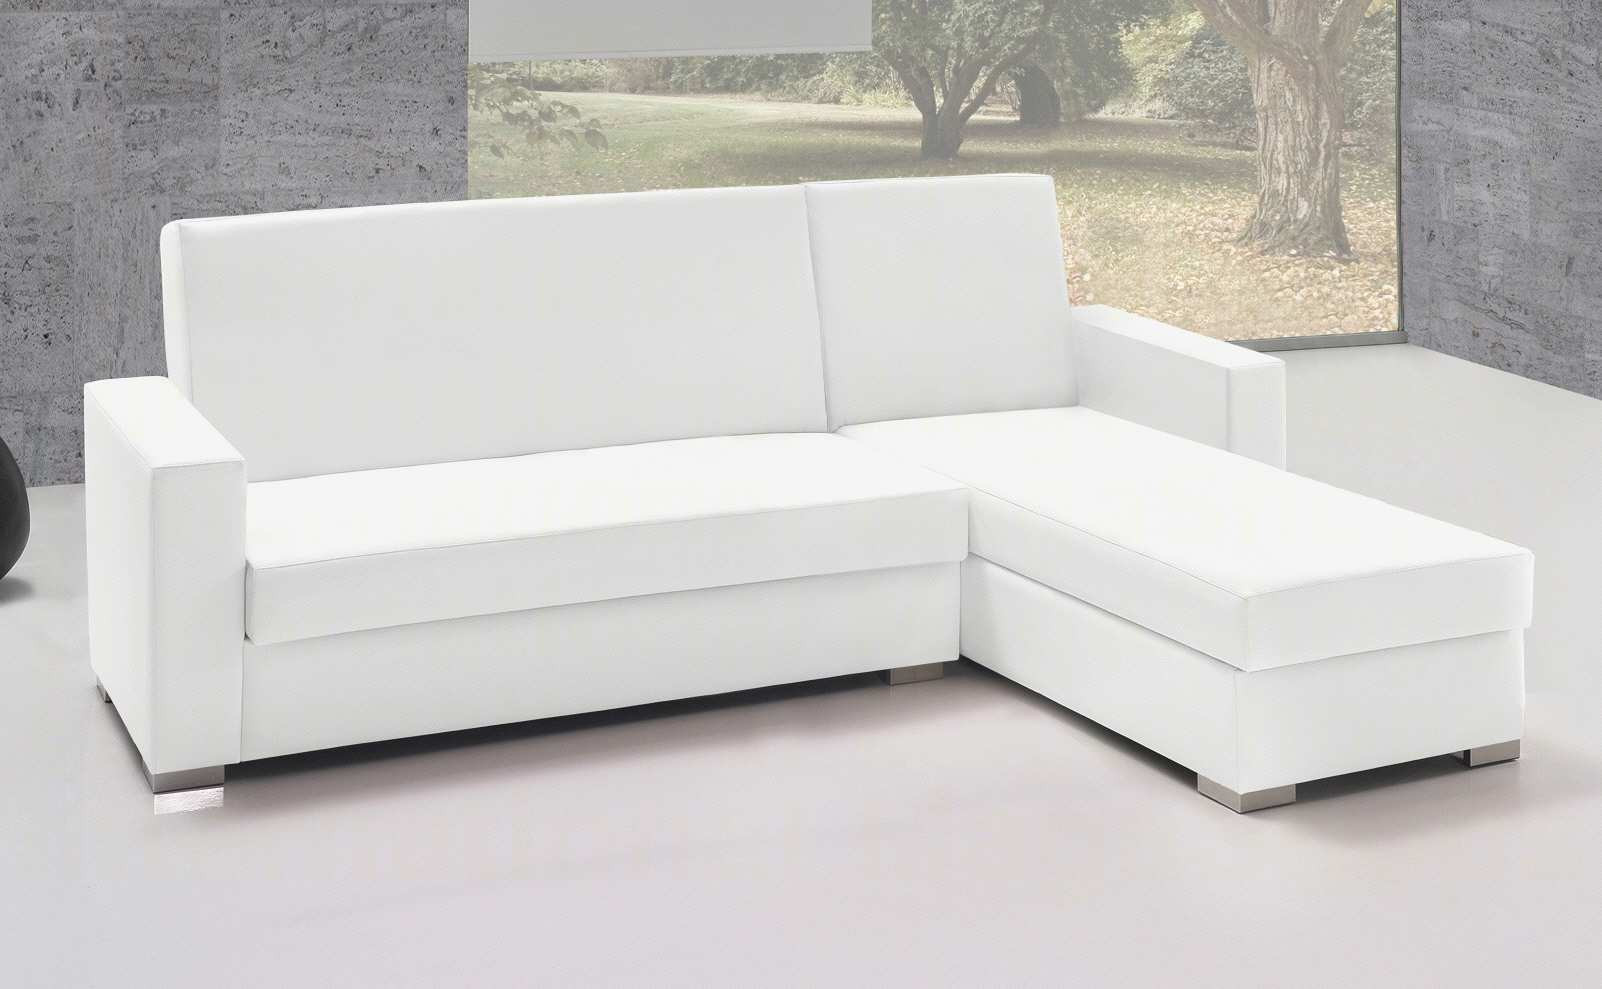 Chaise Longue Cama Baratos Magnífica sofa Cama Chaise Longue Barato Madrid Of Chaise Longue Cama Baratos Perfecto sofa Chaise Longue Barato Long with 1 Cama Segunda Mano